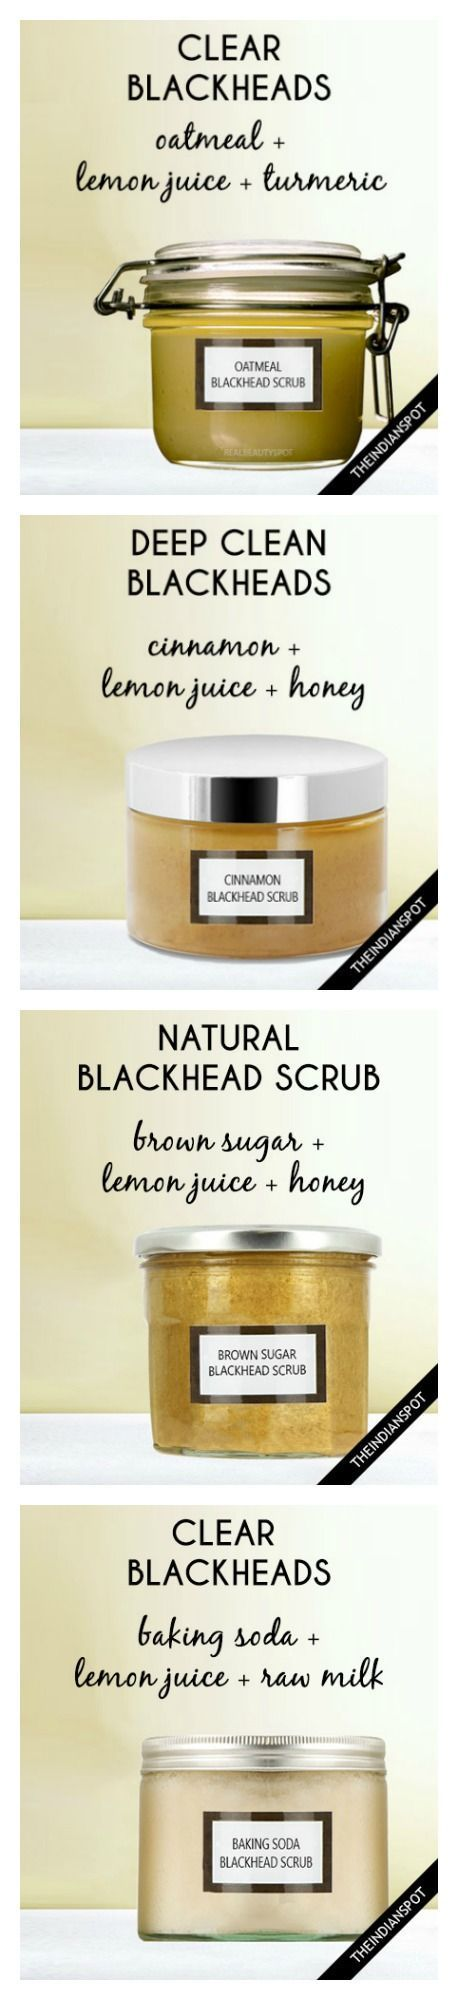 5 Best Homemade Blackhead Remover Scrubs. www.ebay.co.uk/… Check out this natu